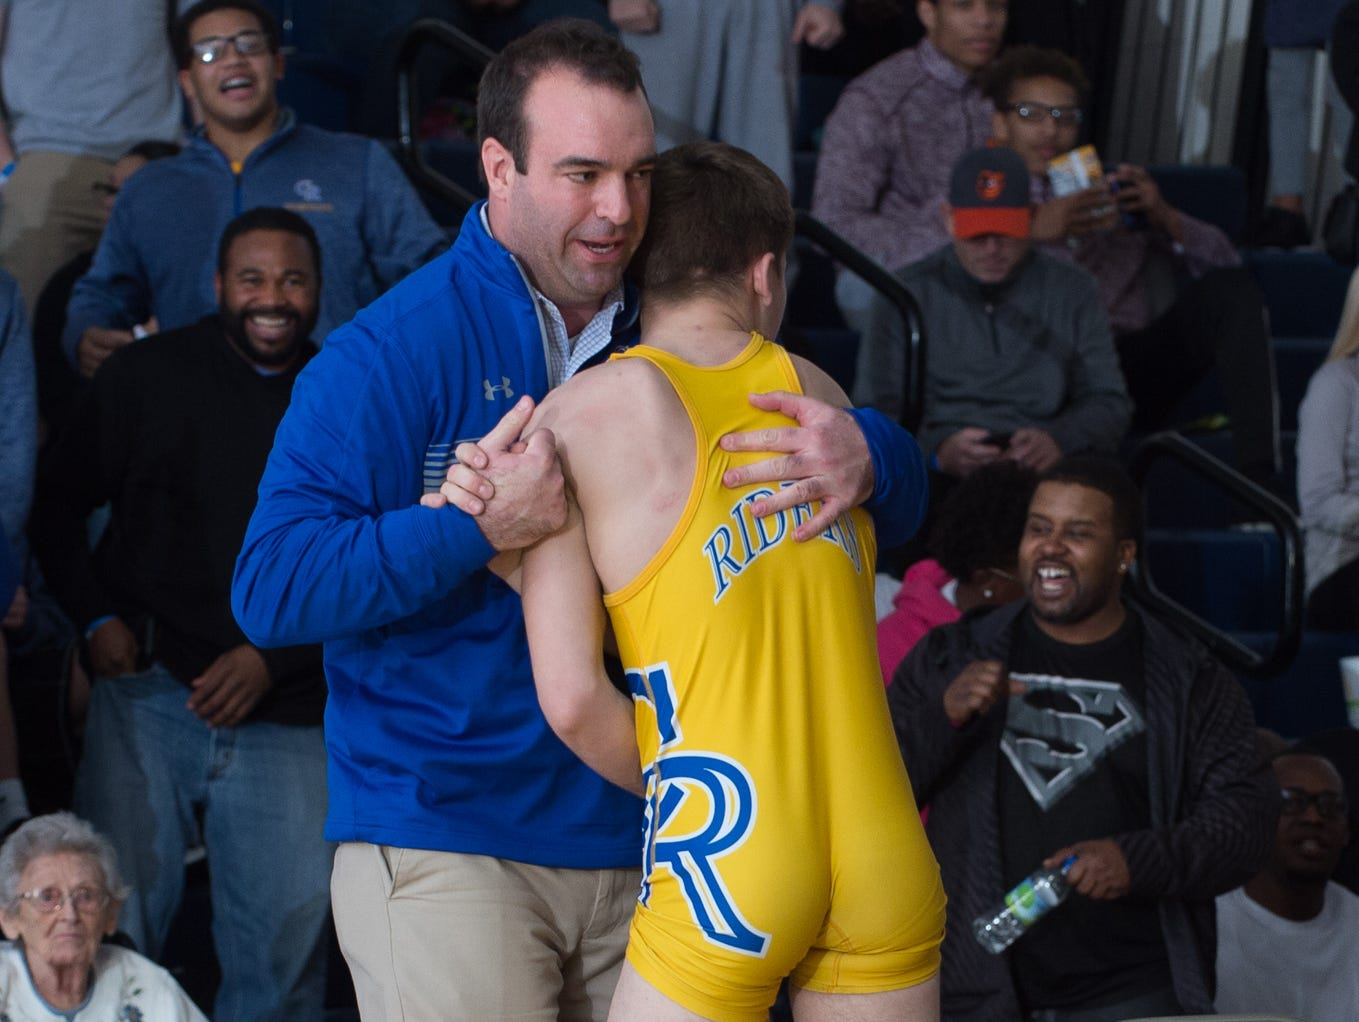 Caesar Rodney's head wrestling coach, Dan Rigby, congratulates Jackson Dean after defeating Smyrna's Greg Baum in the 132 pound championship match at the Henlopen Conference wrestling tournament at Sussex Central High School.